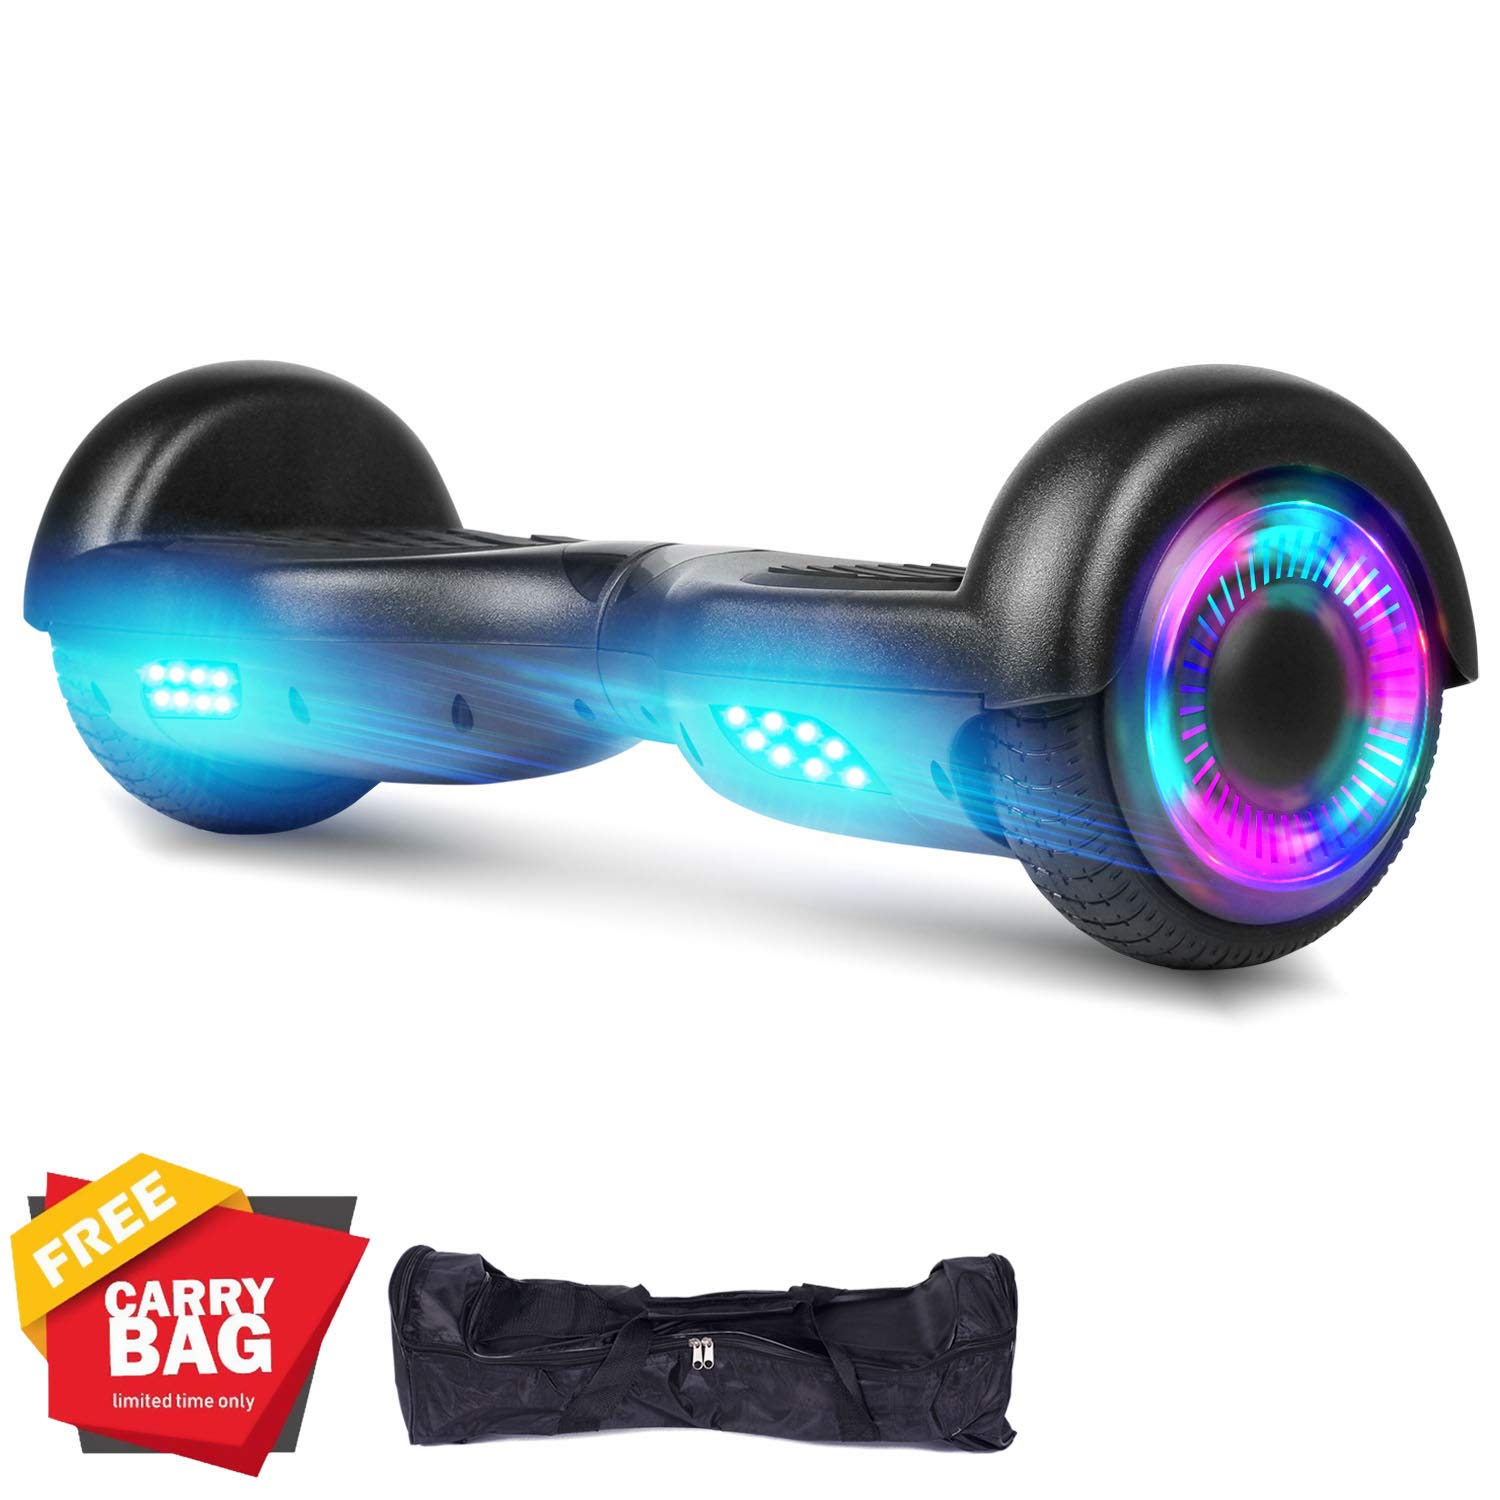 SWEETBUY Hoverboards UL Certified 6.5 Smart Scooter Two-Wheel self Balancing Electric Scooter Light Free Bag and Charger Included by SWEETBUY (Image #1)